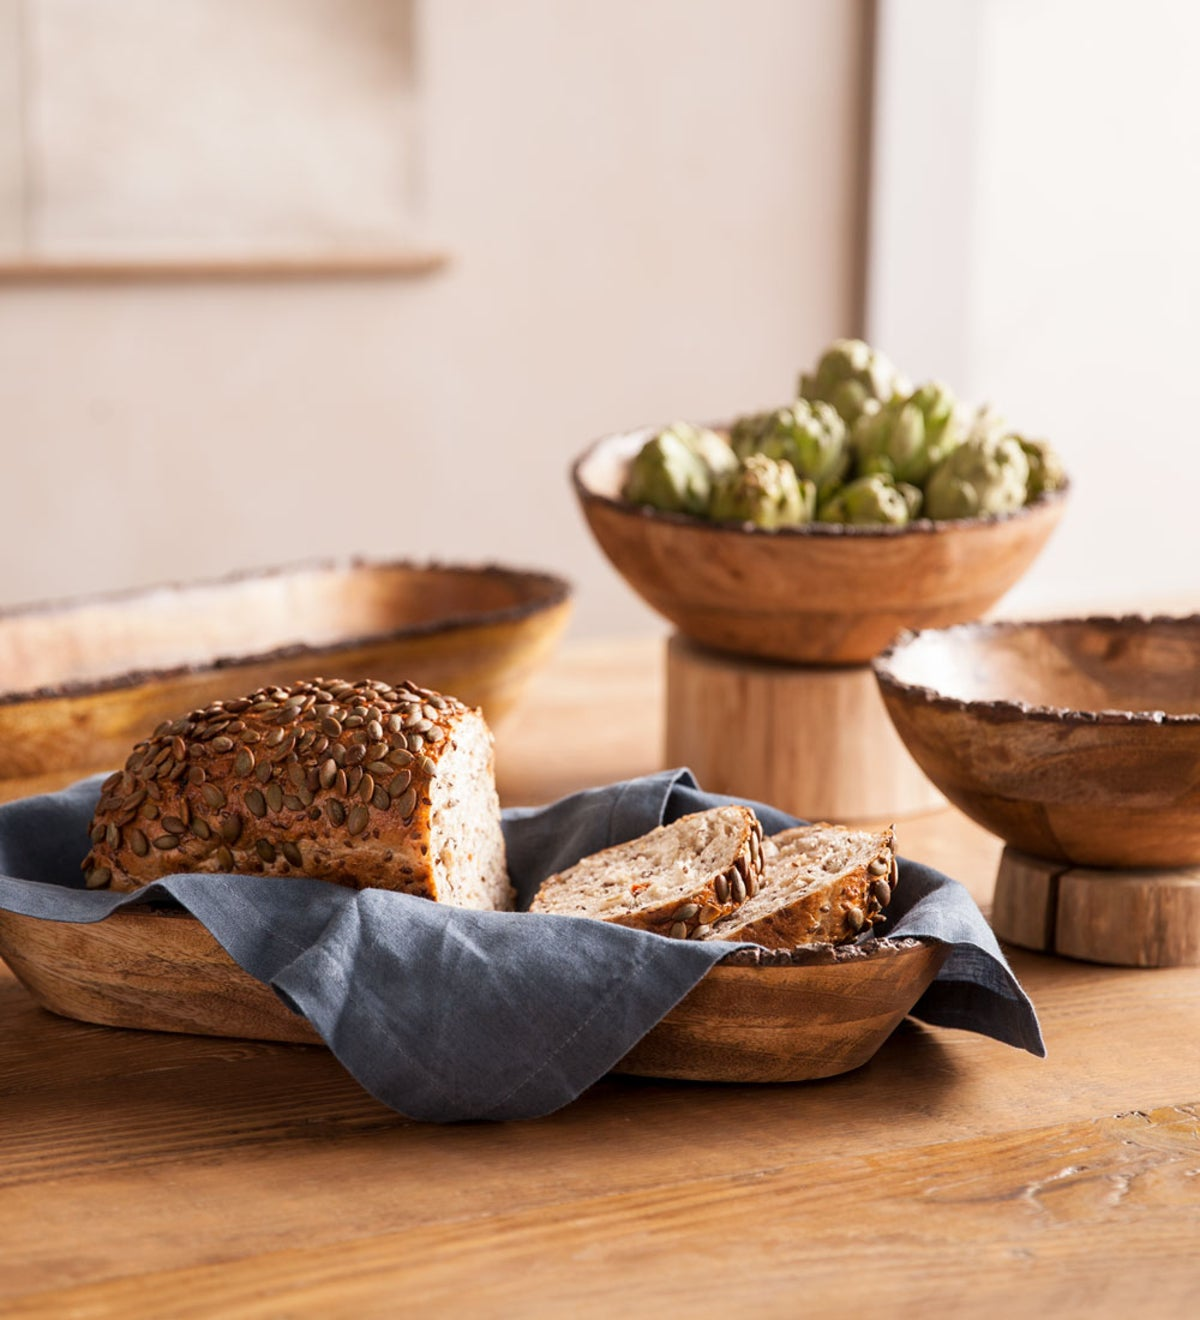 Live Edge Wooden Serving Bowl Collection